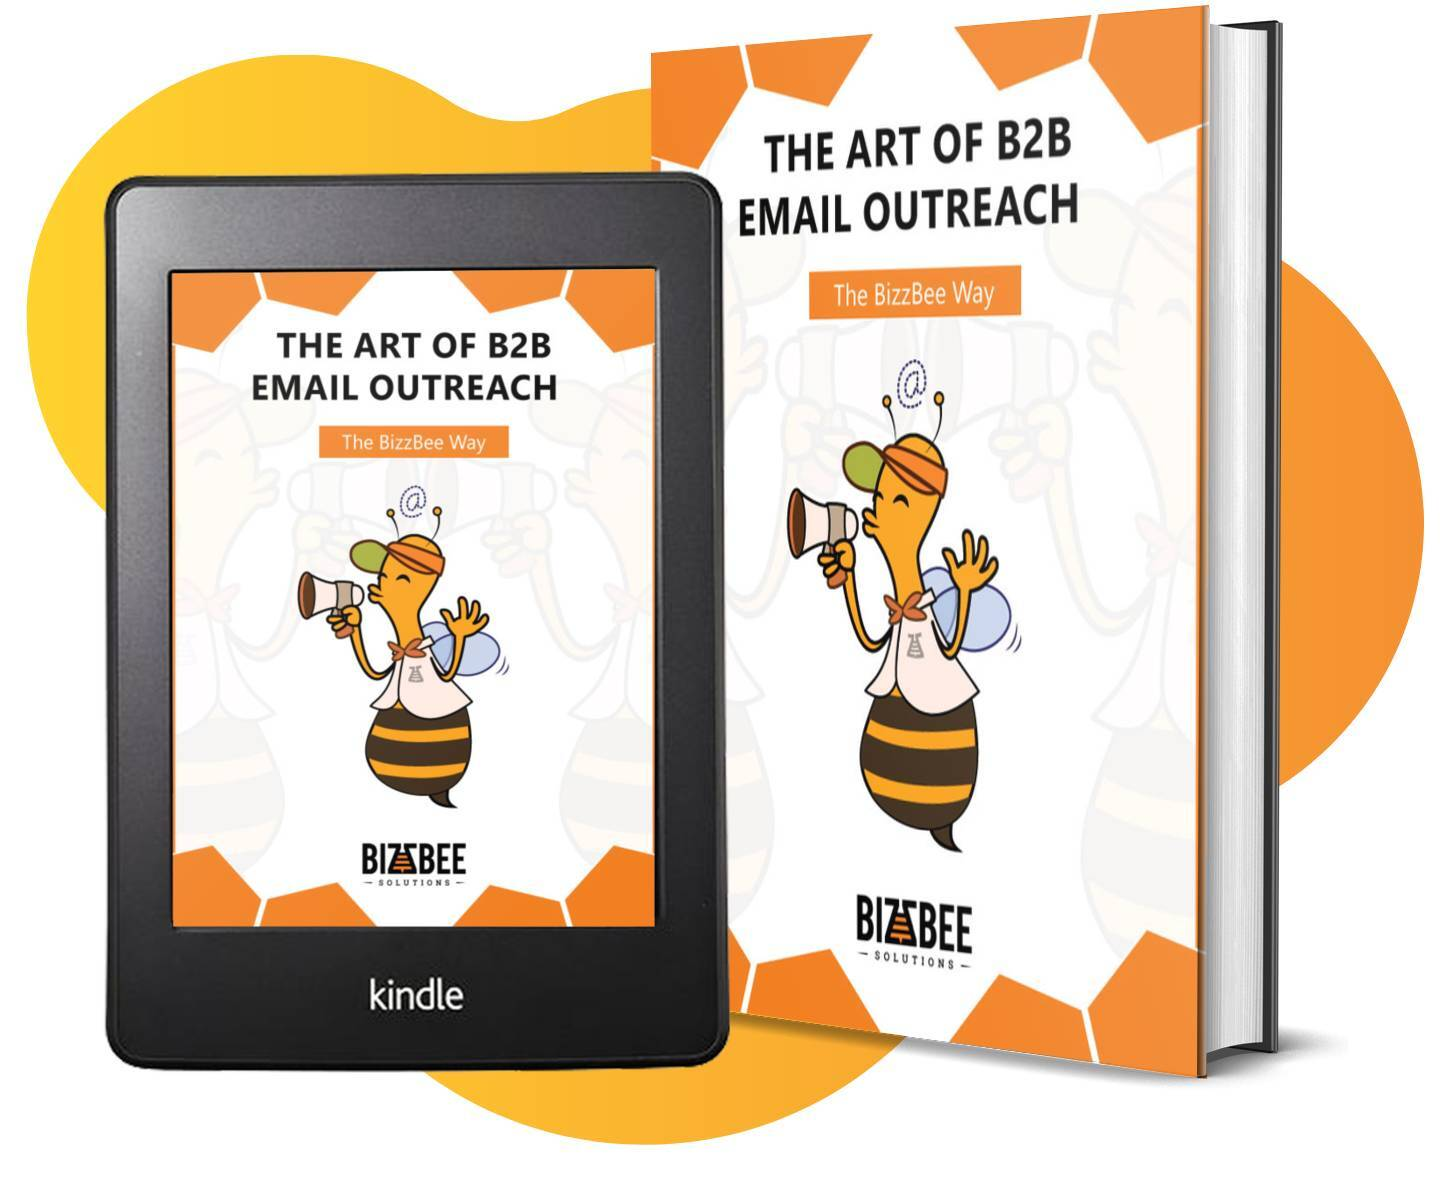 The Art of B2B Email Outreach - BizzBee's ebook cover tablet and physical book mockup.